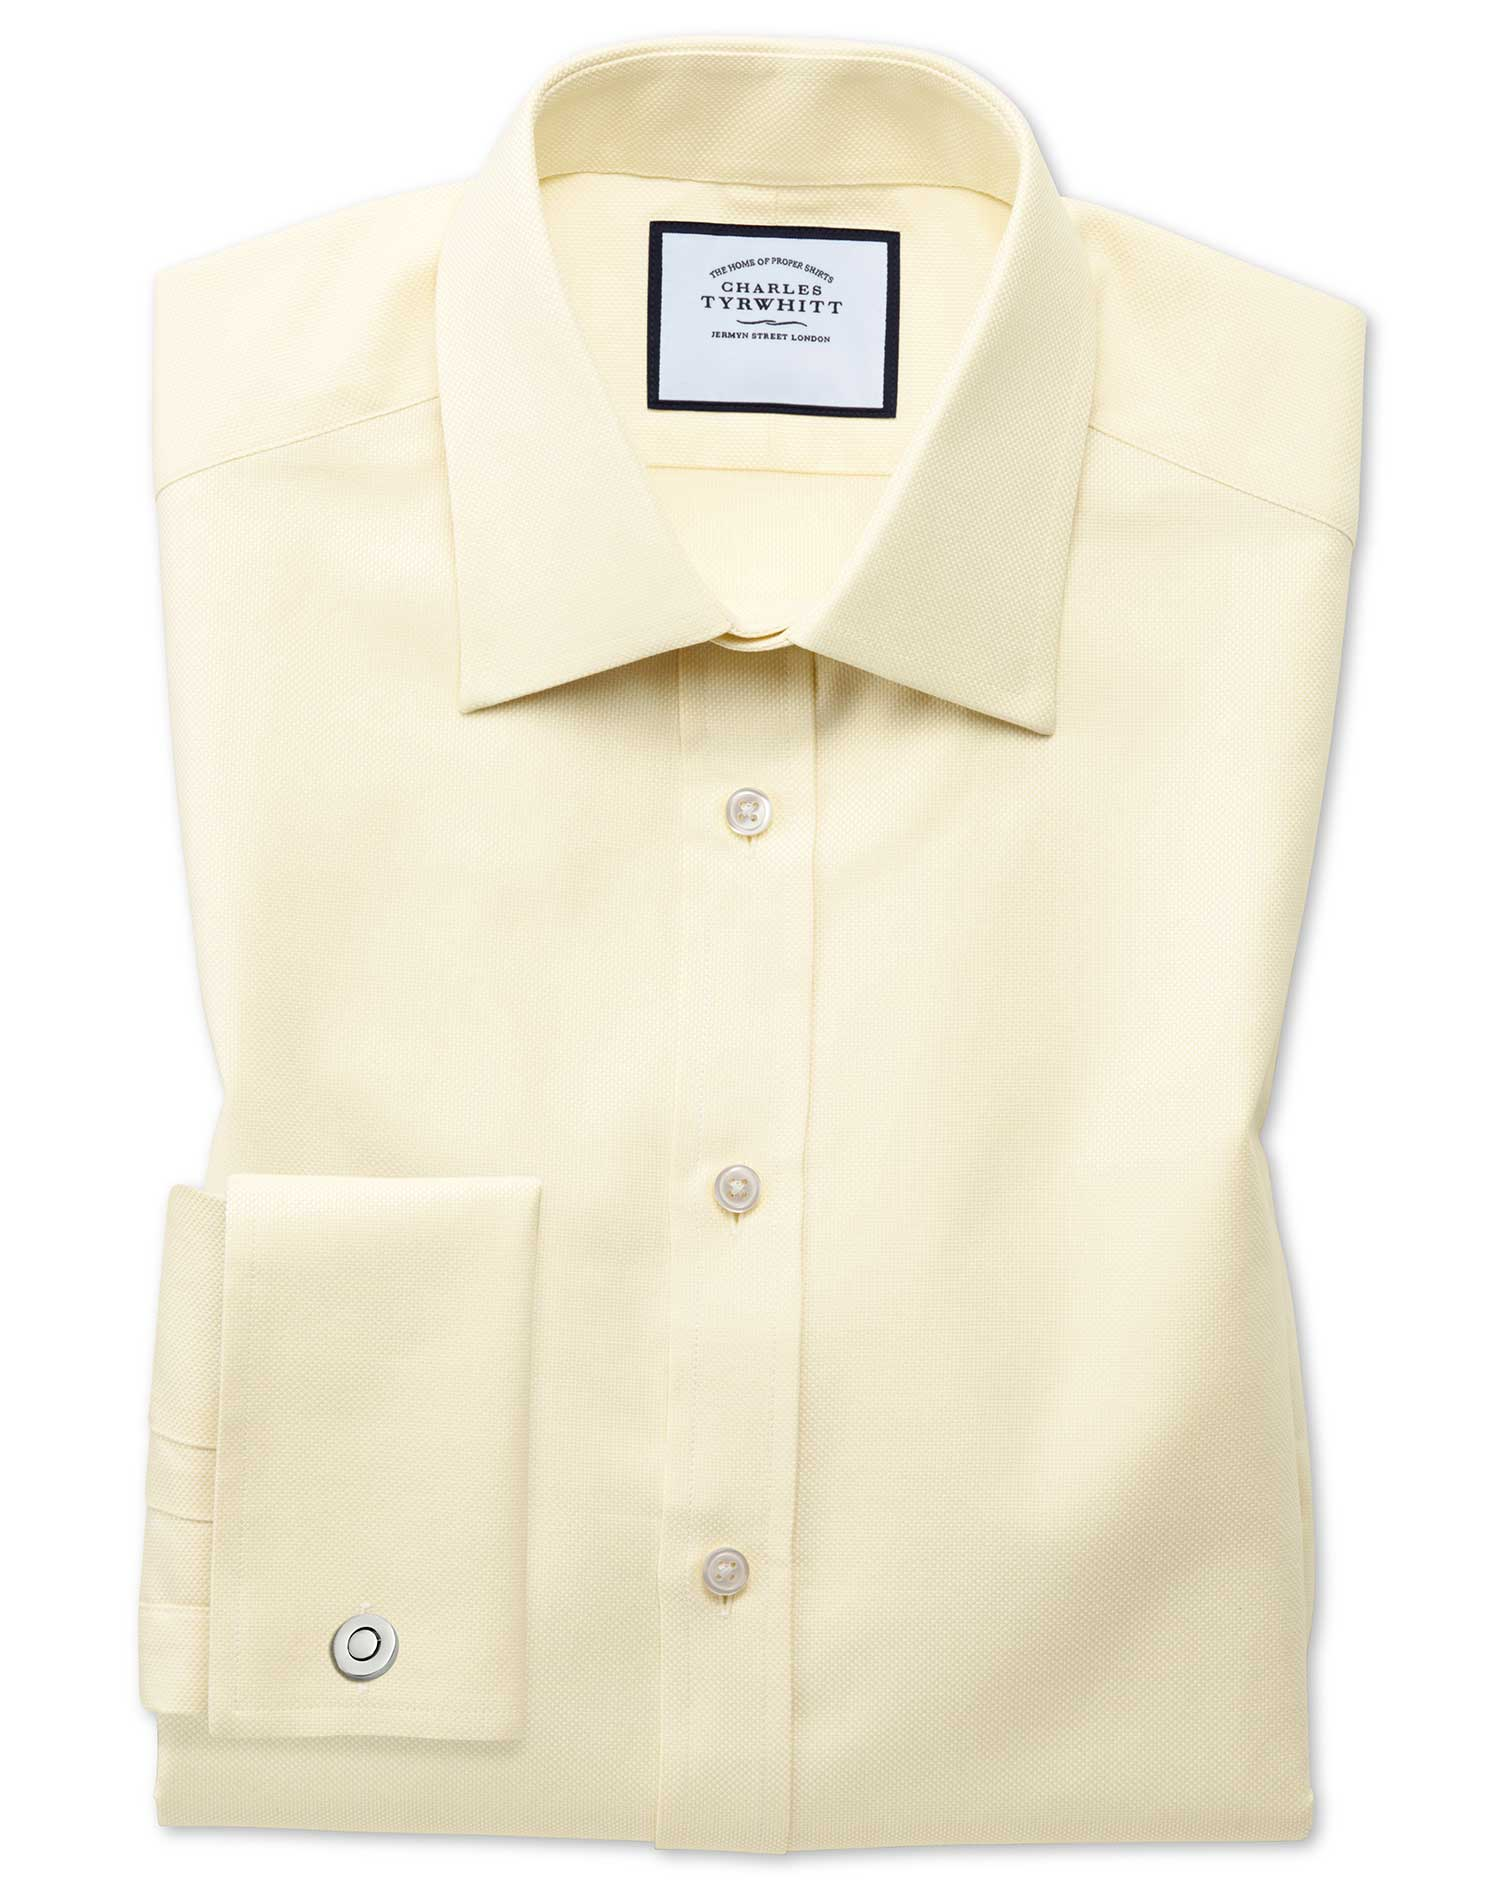 Classic Fit Egyptian Cotton Royal Oxford Yellow Formal Shirt Single Cuff Size 17.5/34 by Charles Tyr